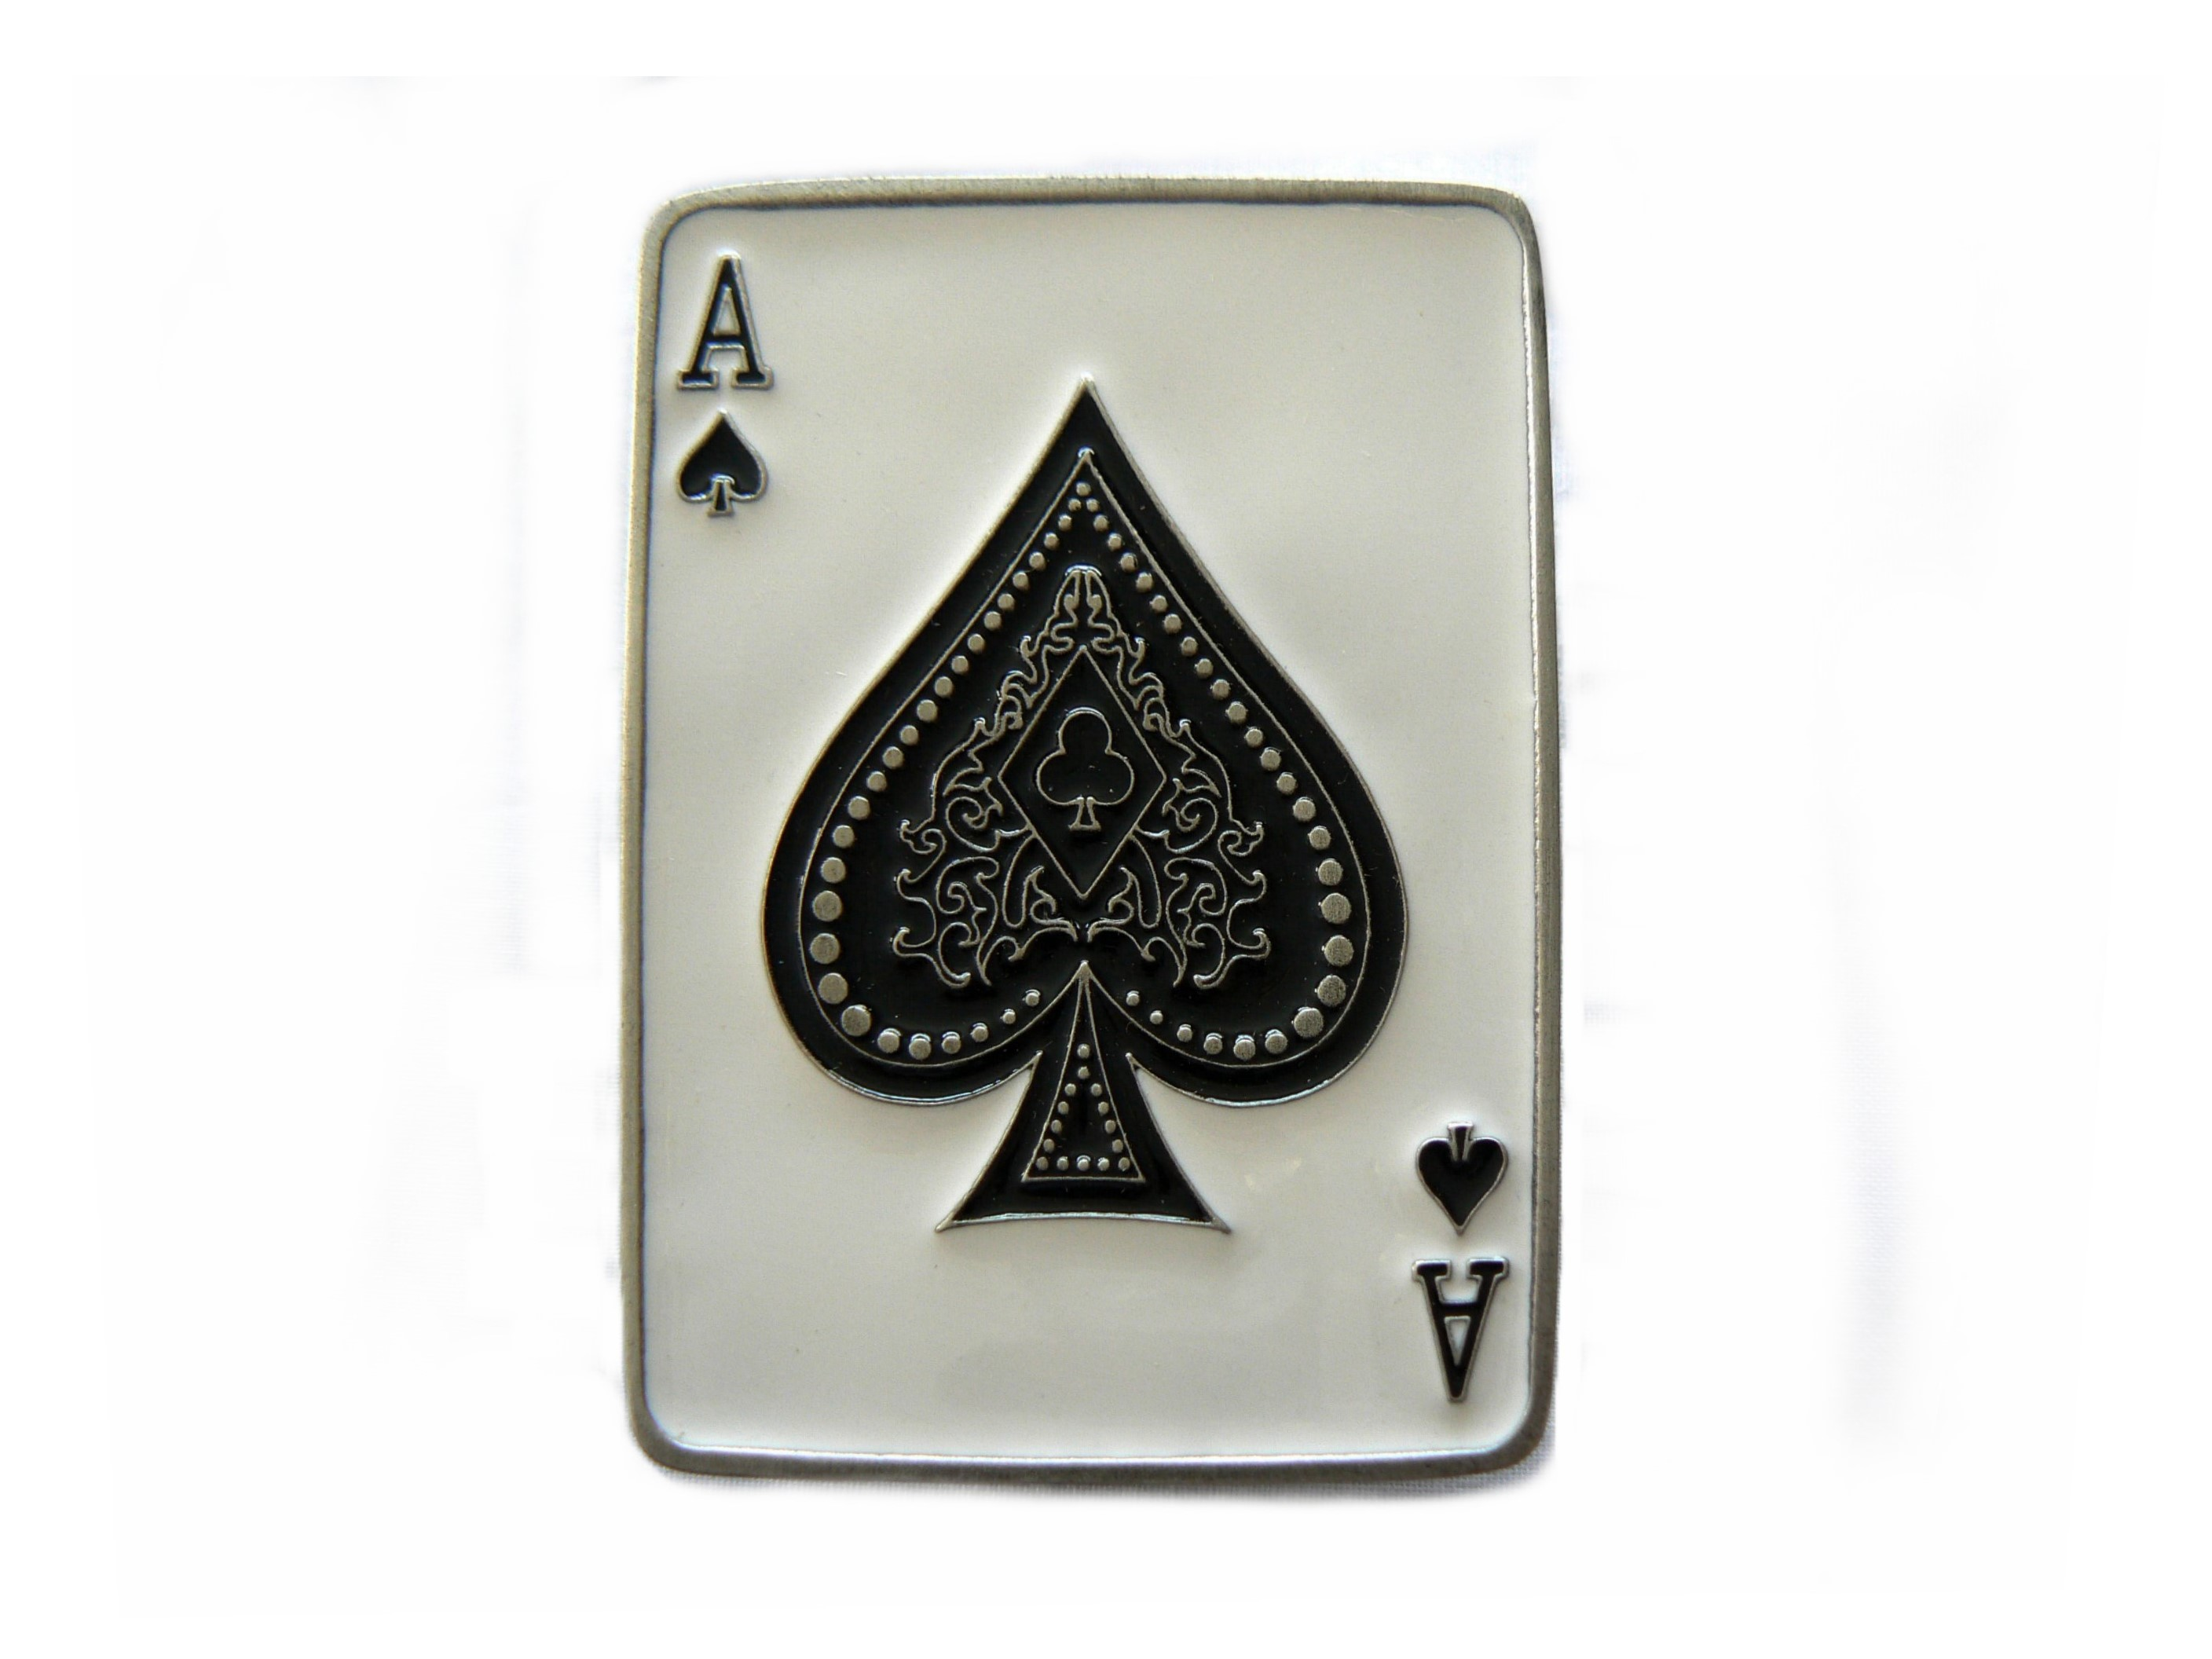 image Ace of spades on the white ladies ass